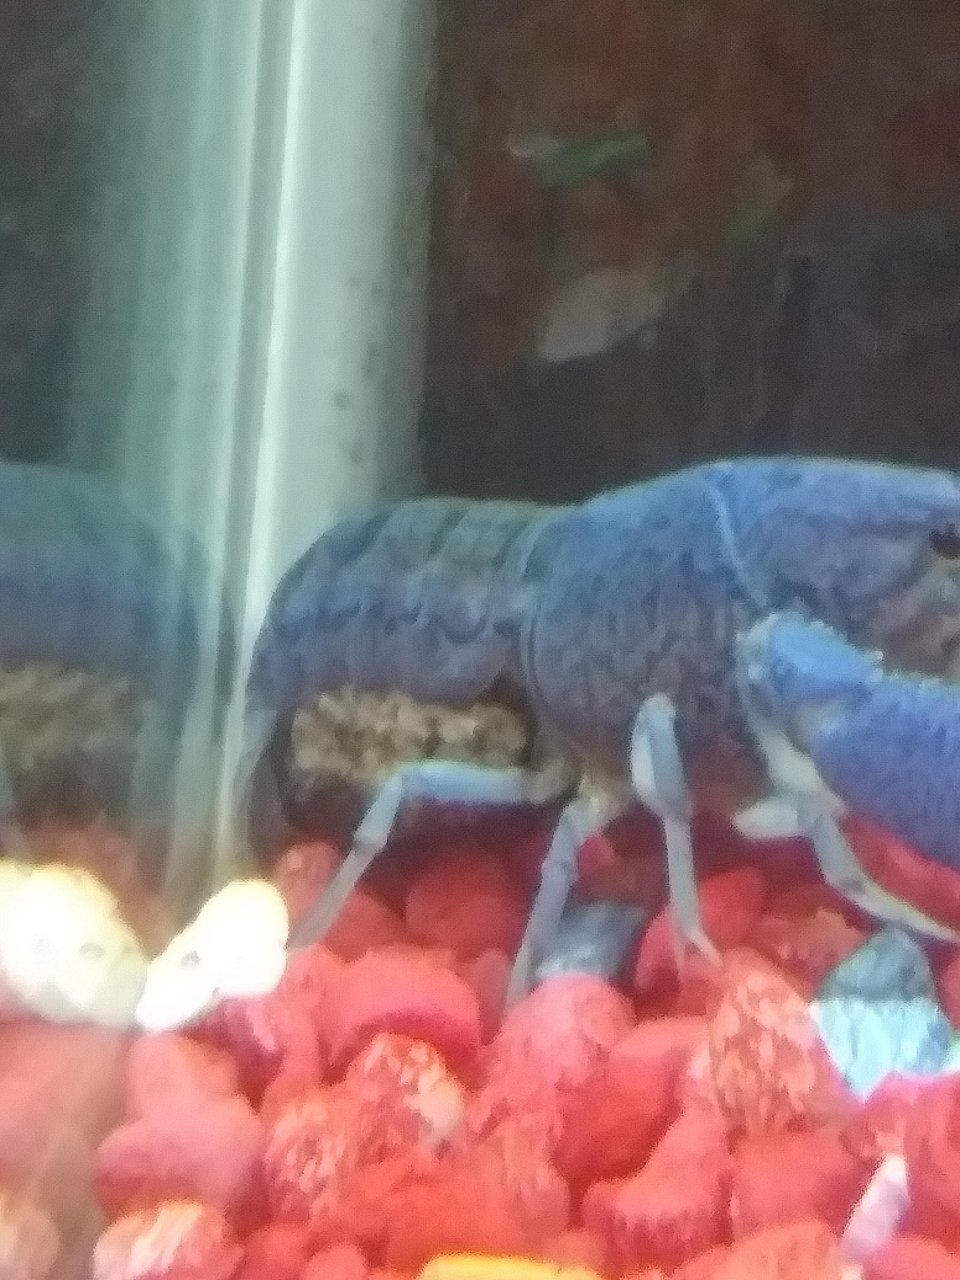 How Do I Tell If My Electric Blue Crayfish's Eggs Have Been